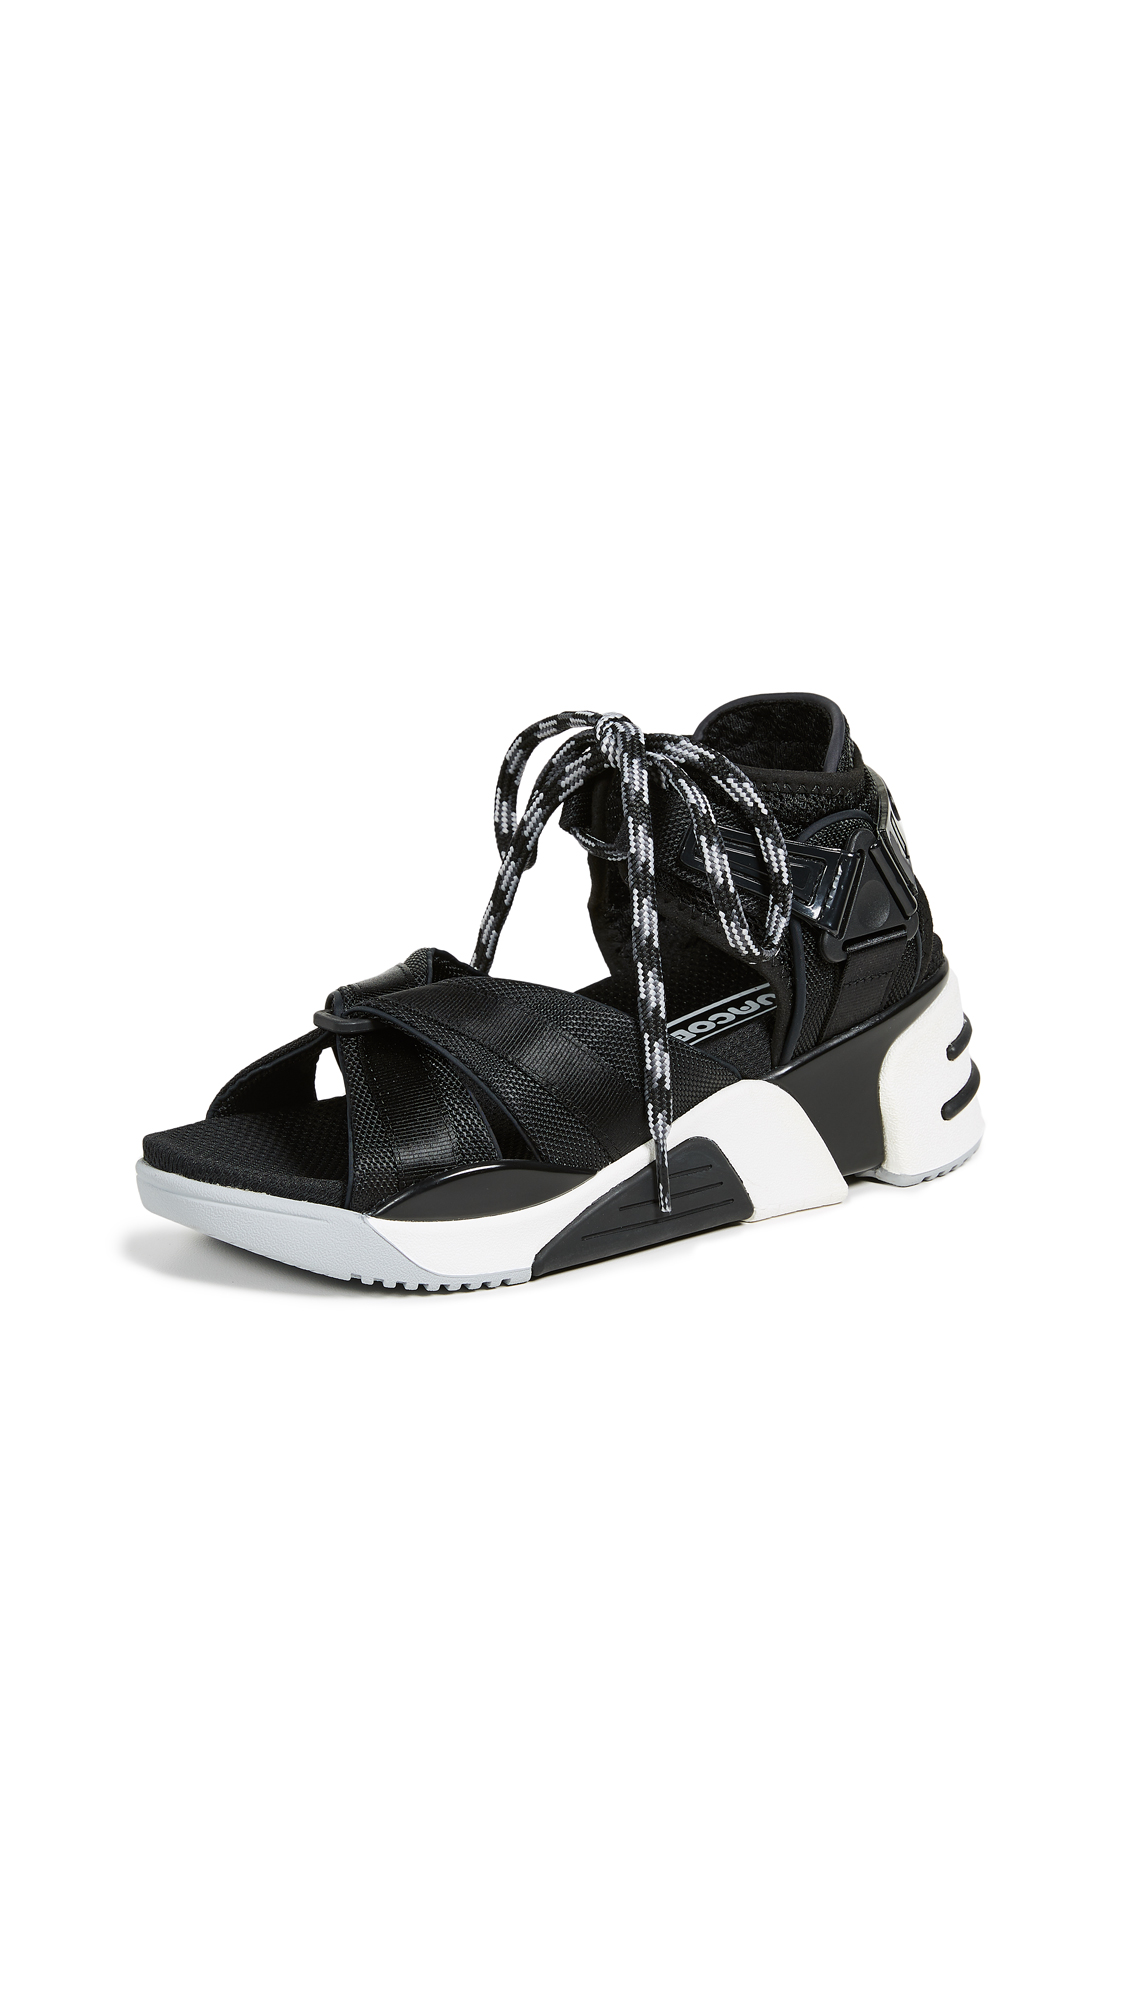 Marc Jacobs Somewhere Sport Sandals with Socks - Black Multi